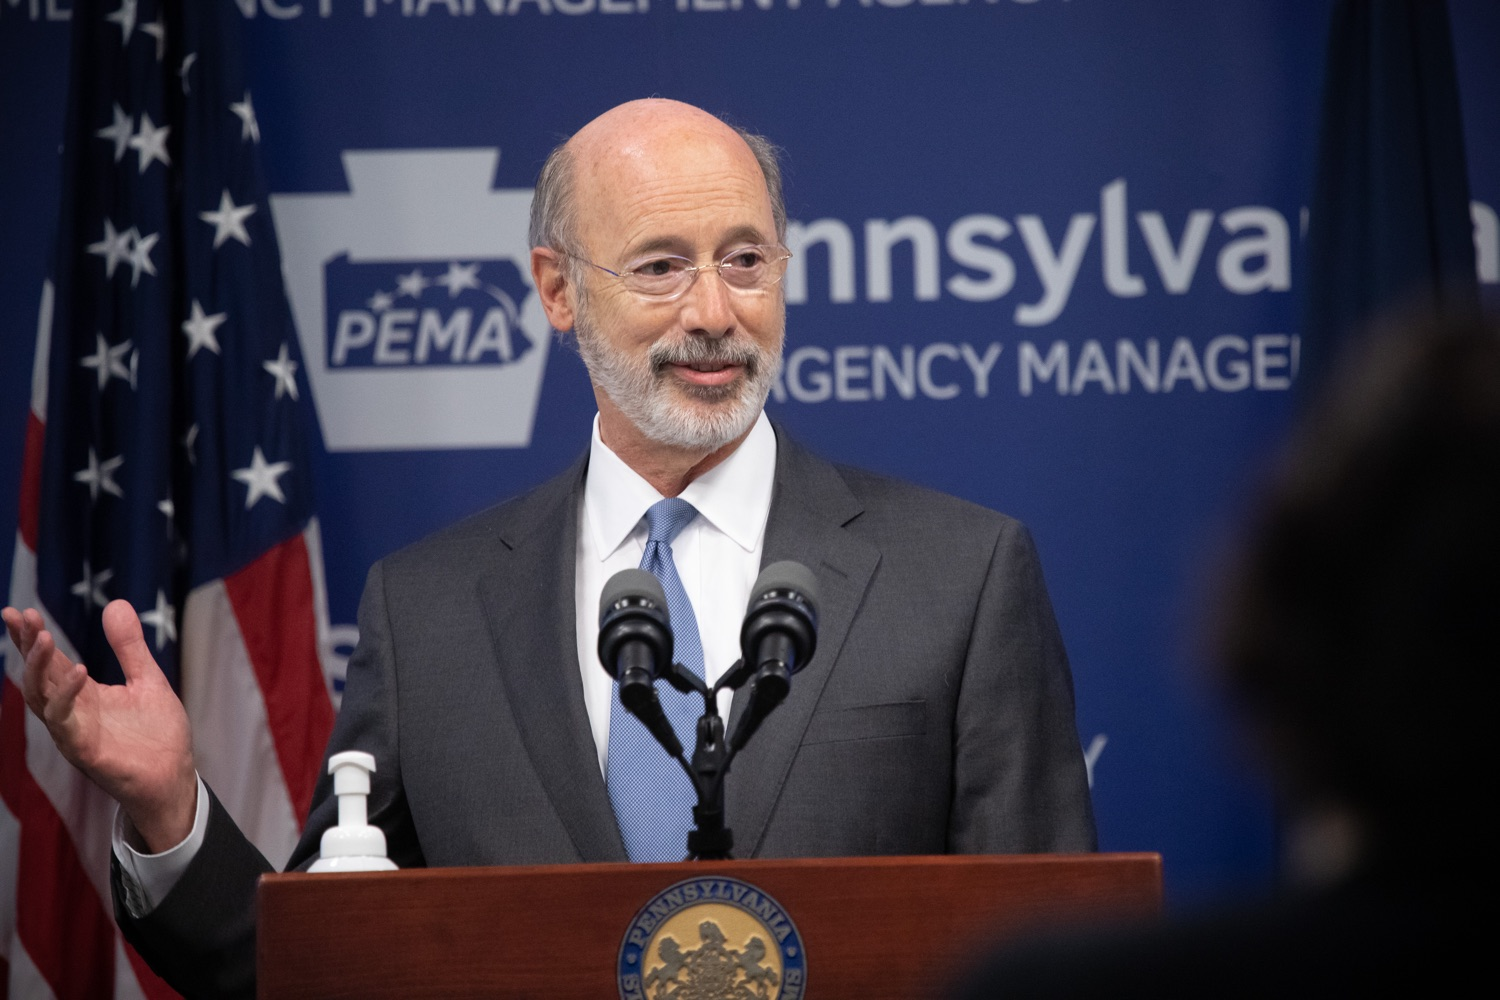 "<a href=""https://filesource.wostreaming.net/commonwealthofpa/photo/18088_gov_covid_update_dz_0006.jpg"" target=""_blank"">⇣ Download Photo<br></a>Governor Tom Wolf answers questions from the press. Governor Tom Wolf announced that people with intellectual disabilities and autism and the providers of support services for these vulnerable Pennsylvanians will receive $260 million in CARES Act funding to help continue to provide services during the COVID-19 pandemic.  Gov. Wolf was joined by Department of Human Services Secretary Teresa Miller, who outlined to details of funding allocations.  JUNE 15, 2020 - HARRISBURG, PA"